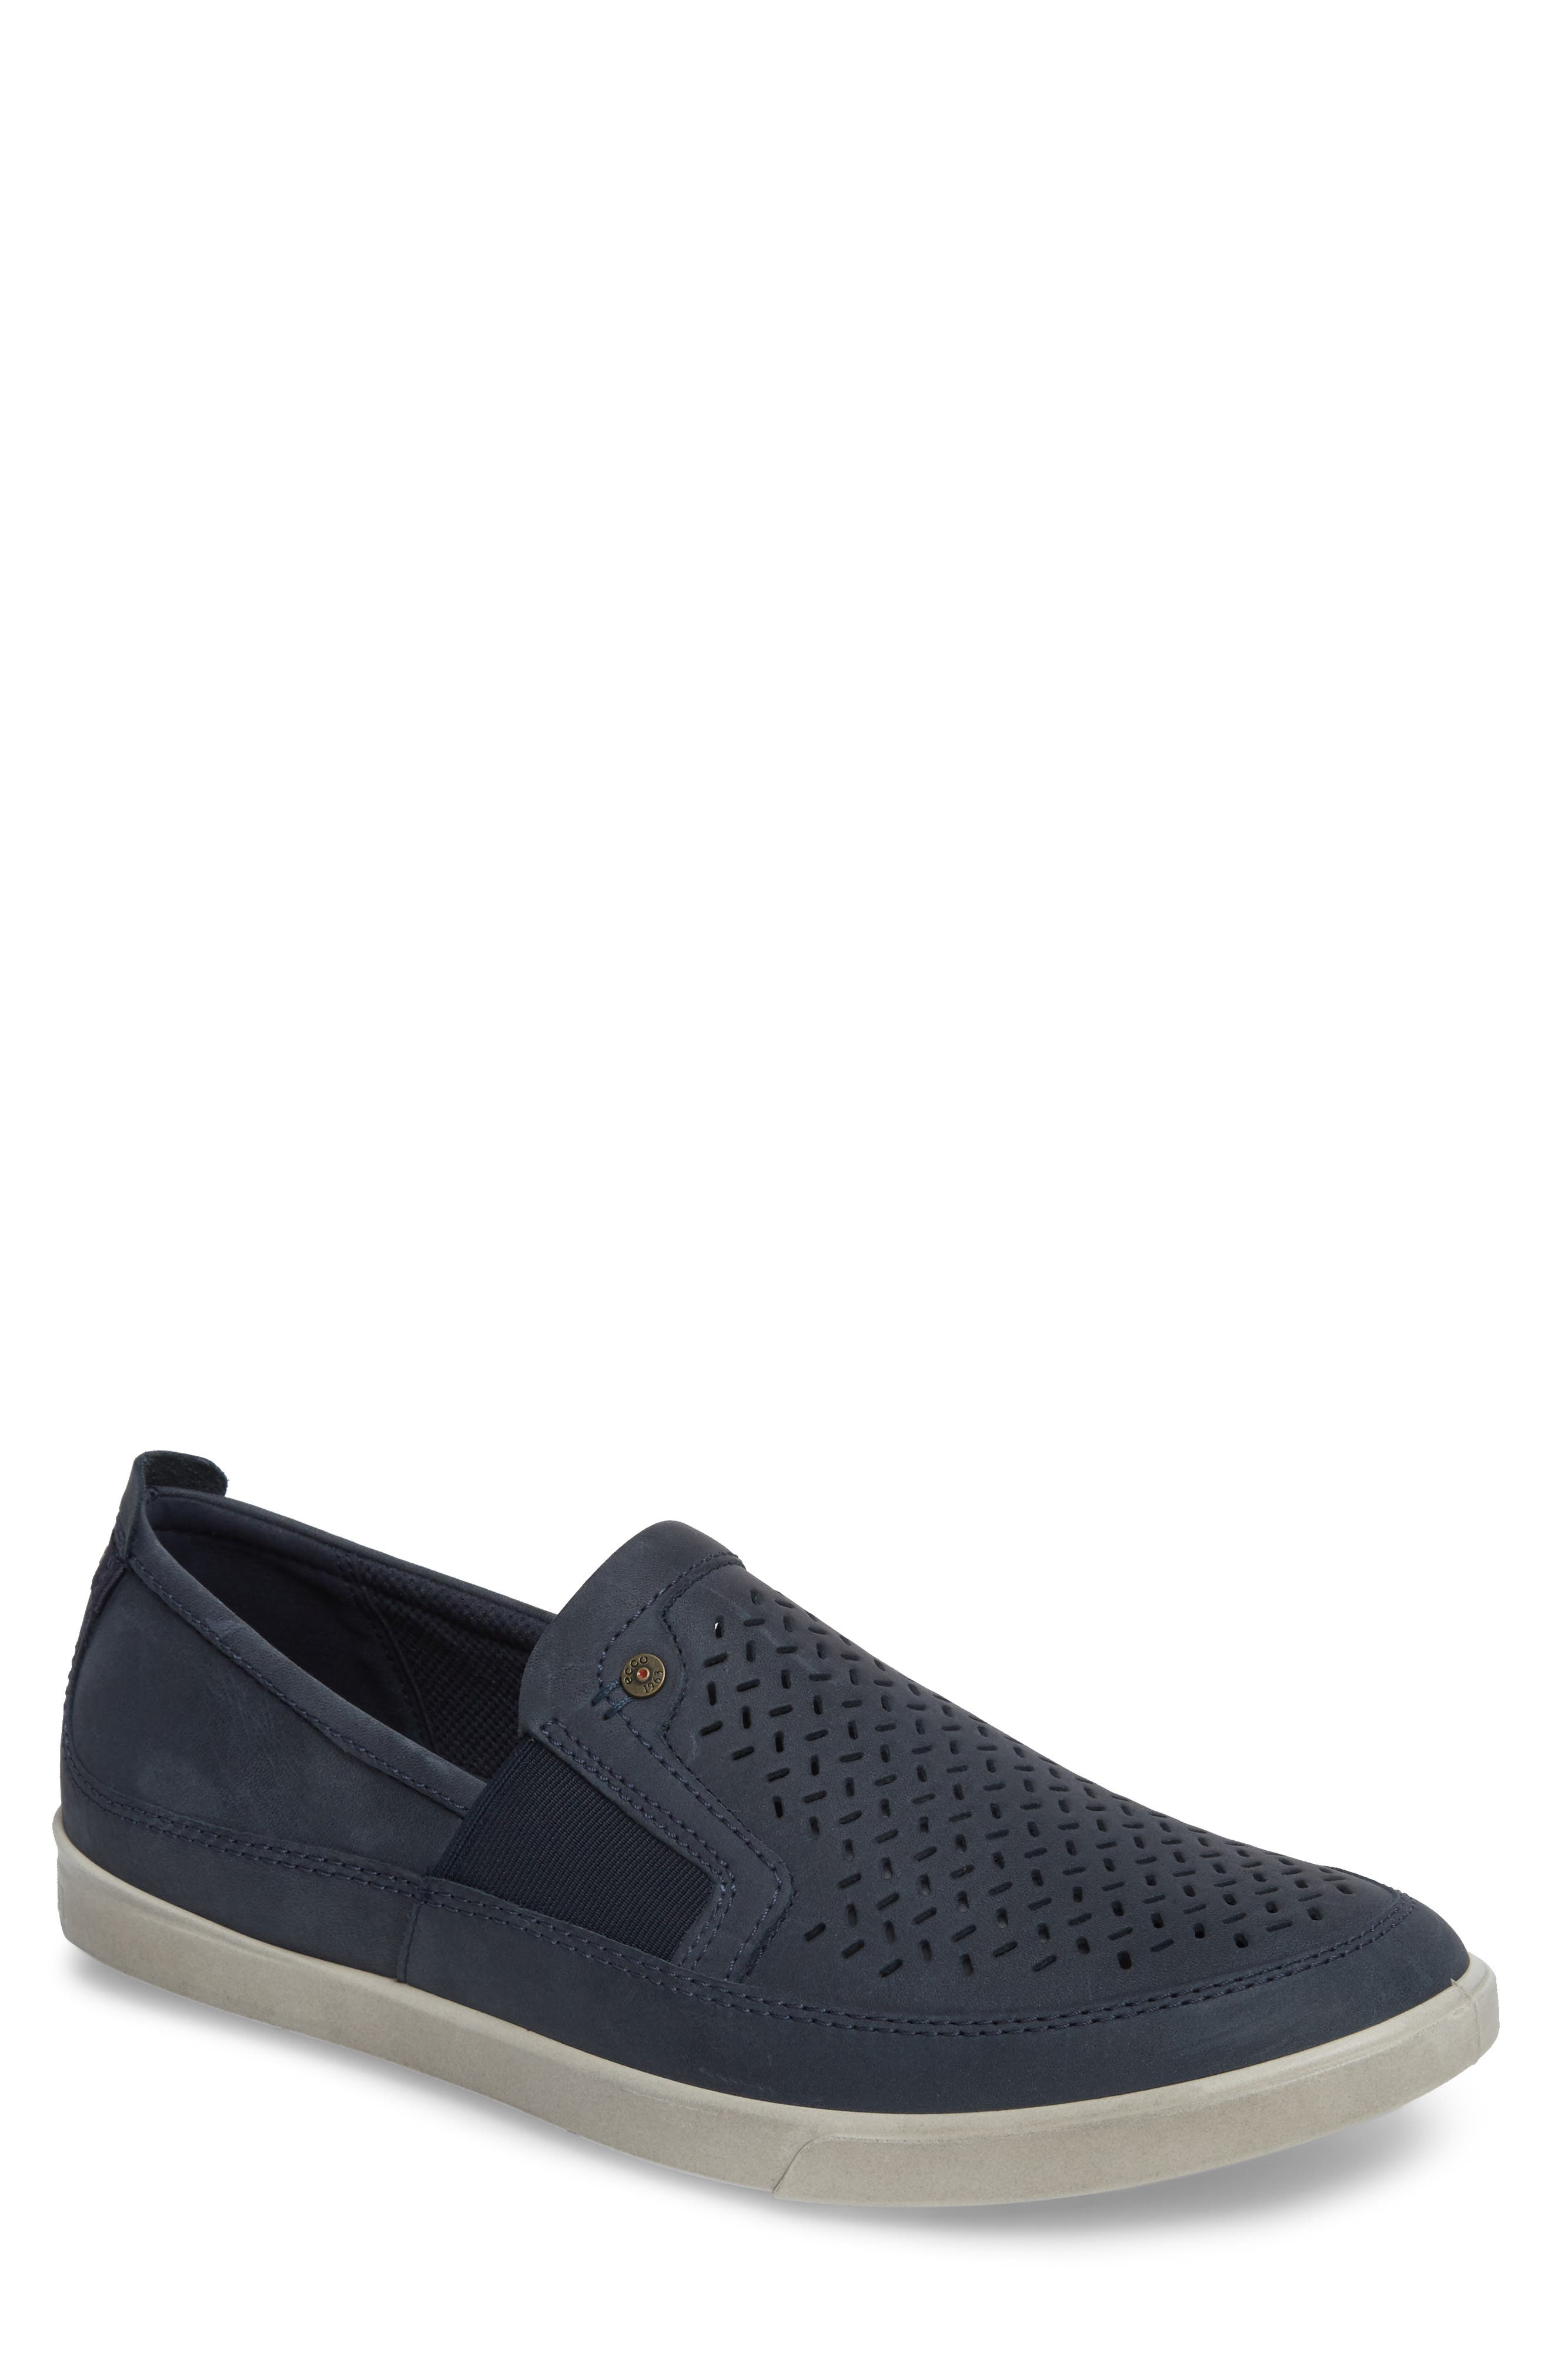 'Collin' Perforated Slip On Sneaker,                             Main thumbnail 1, color,                             MARINE LEATHER